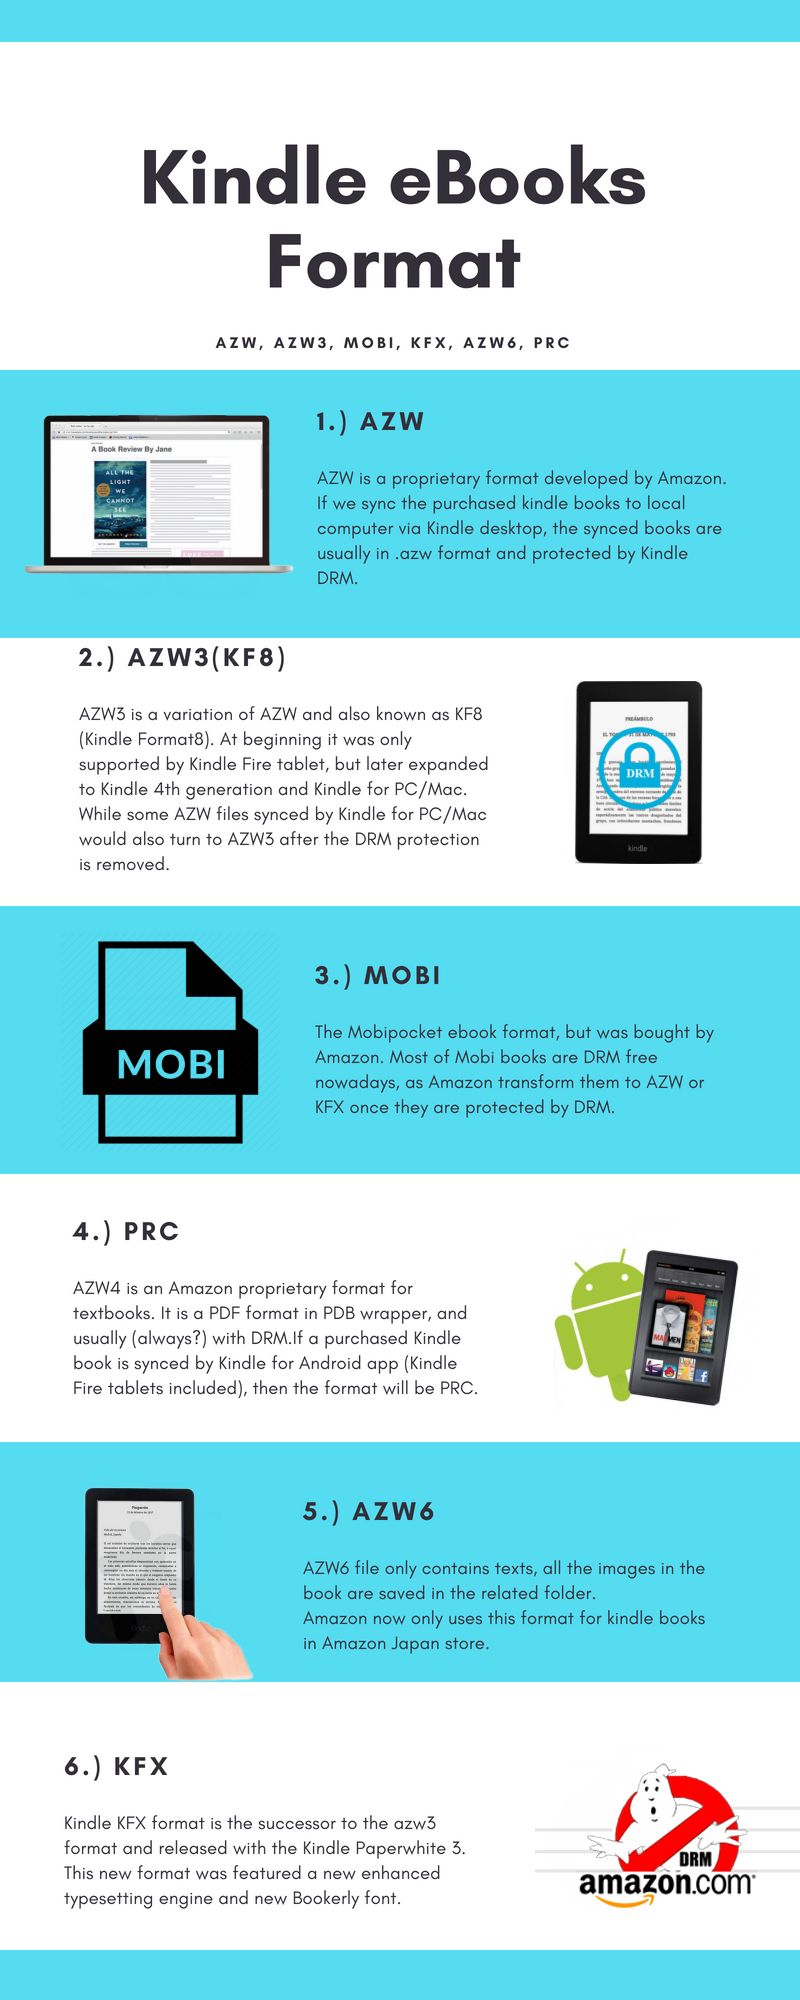 Difference Between Kindle Content AZW, AZW3, PRC, Mobi, Topaz, AZW6